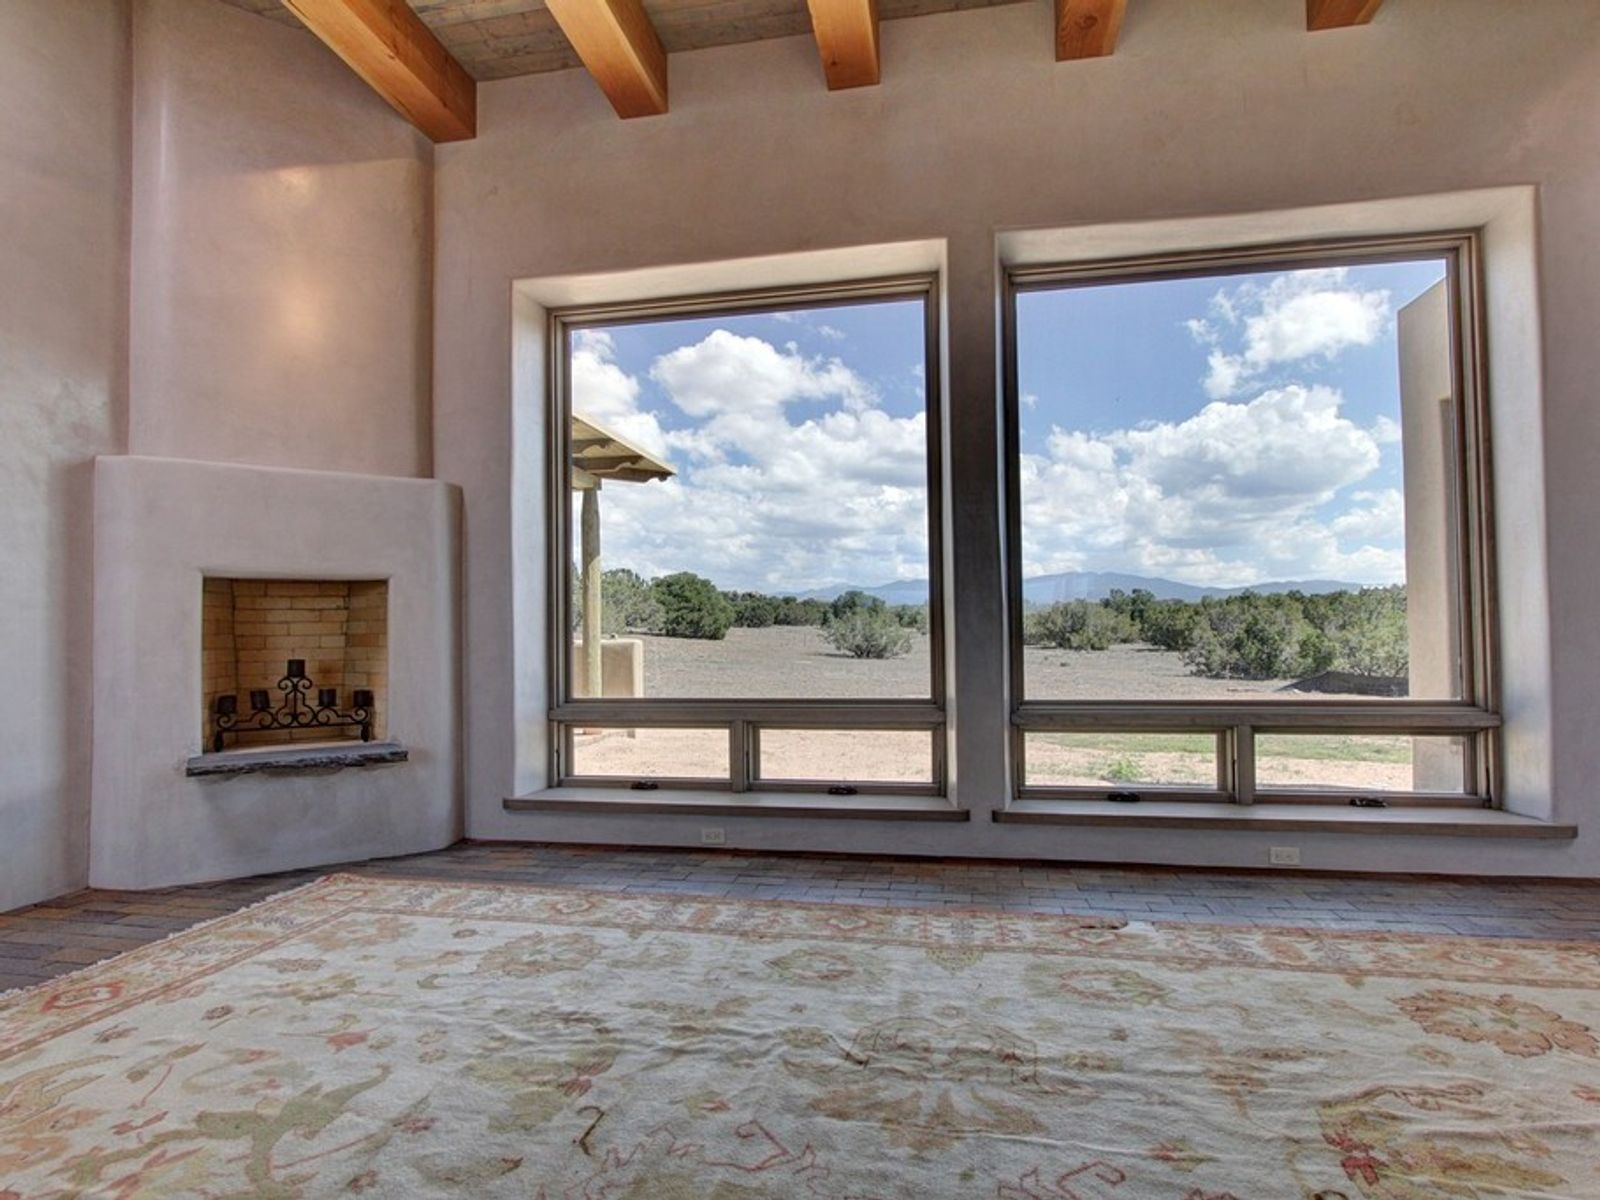 148 Sunflower Drive, Santa Fe NM Single Family Home - Santa Fe Real Estate